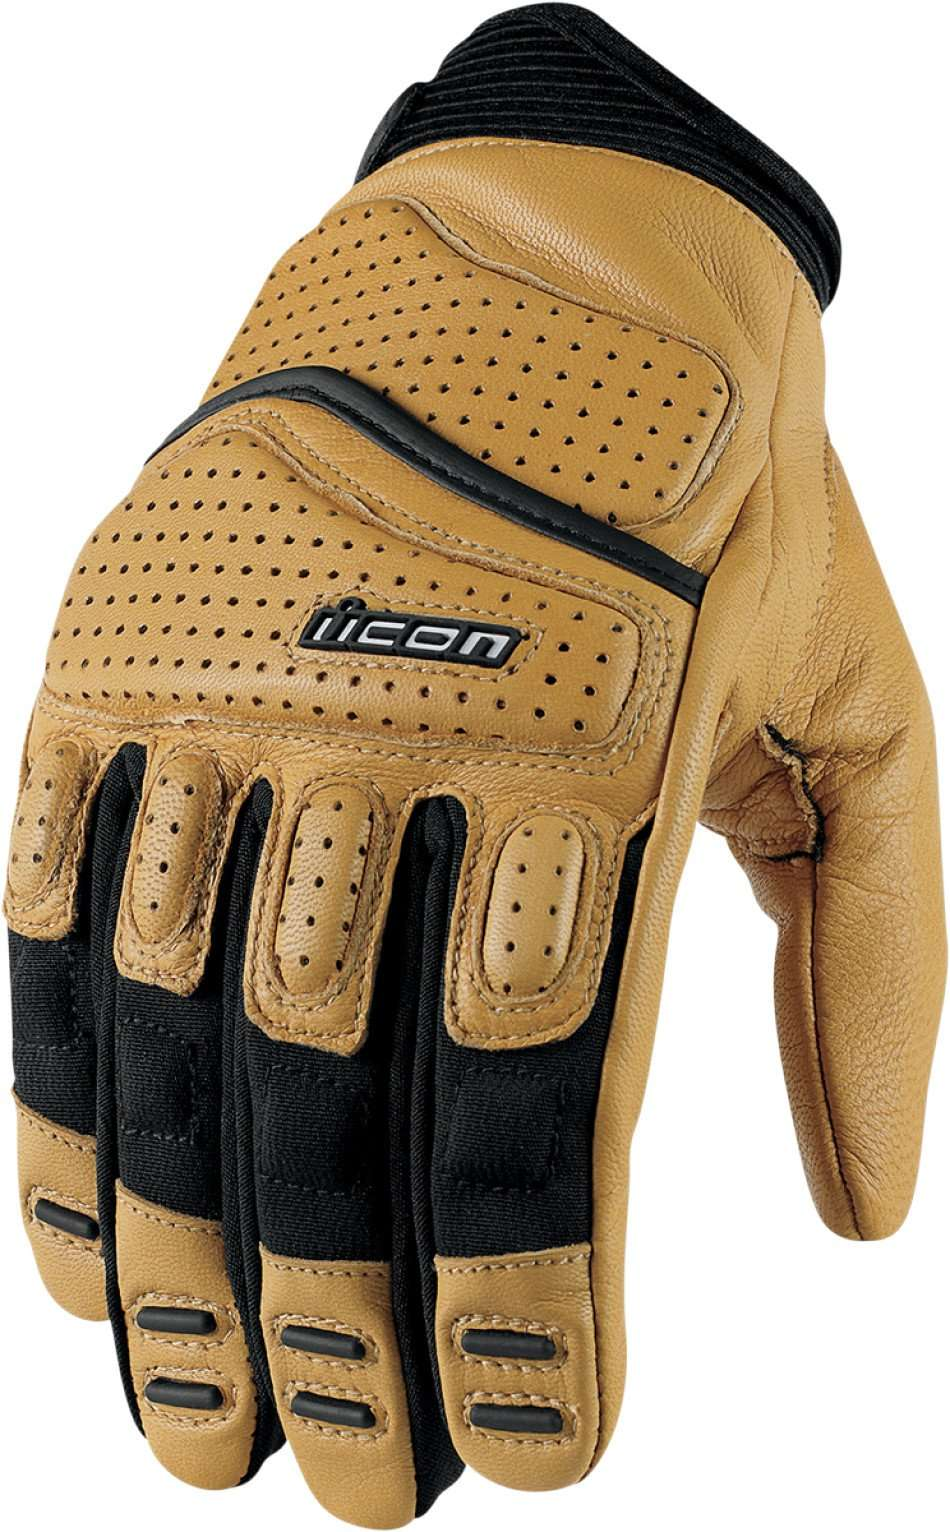 Icon Super Duty motor gloves